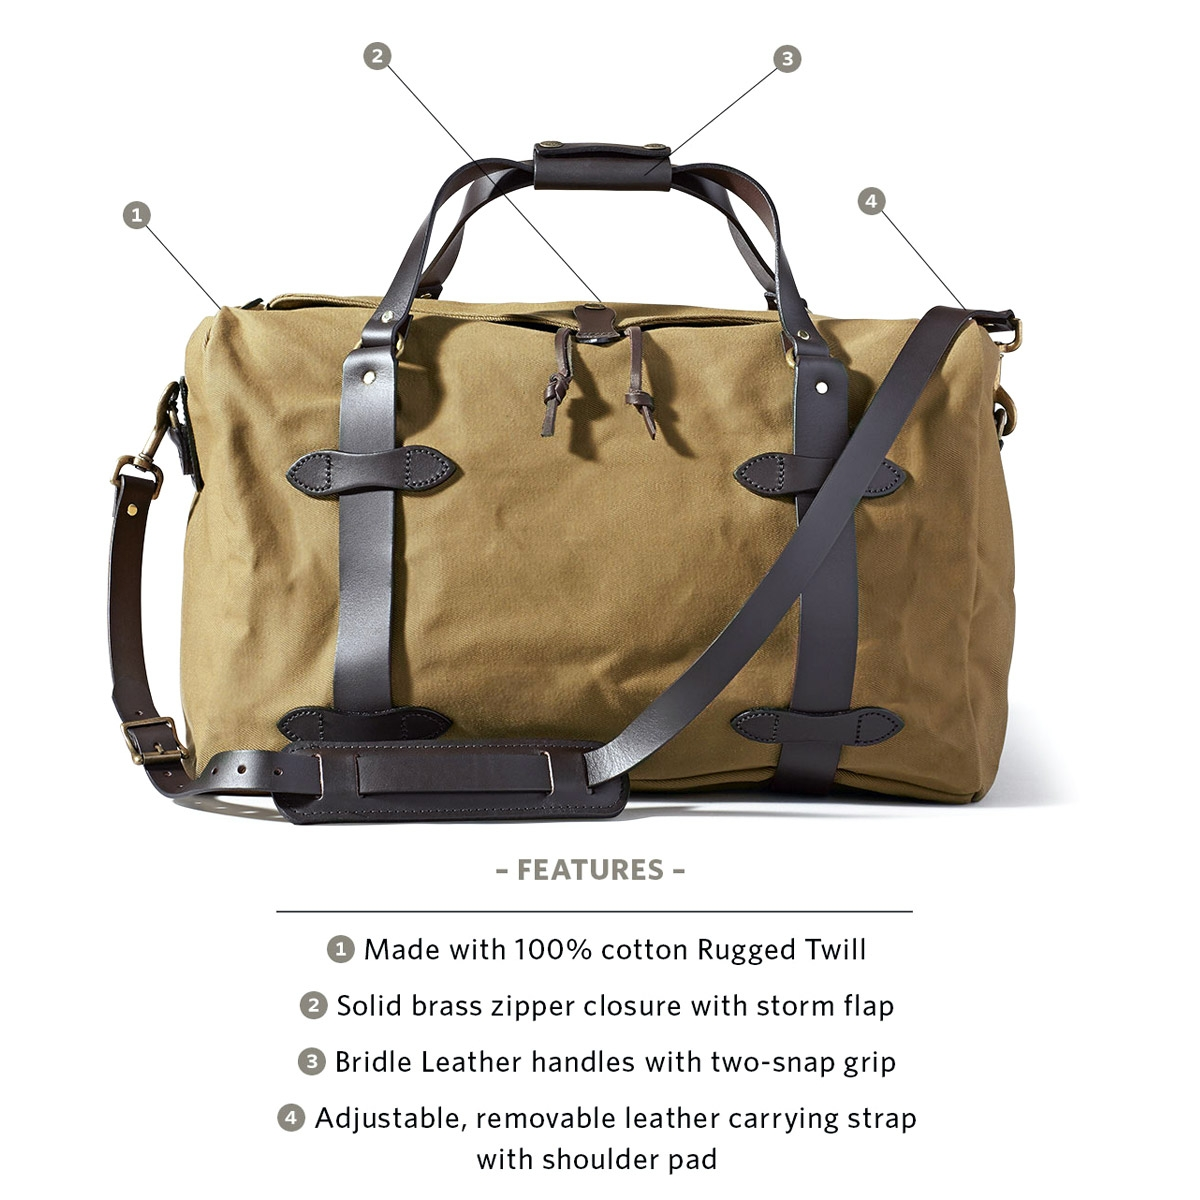 Filson Duffle Medium 11070325 Tan explained